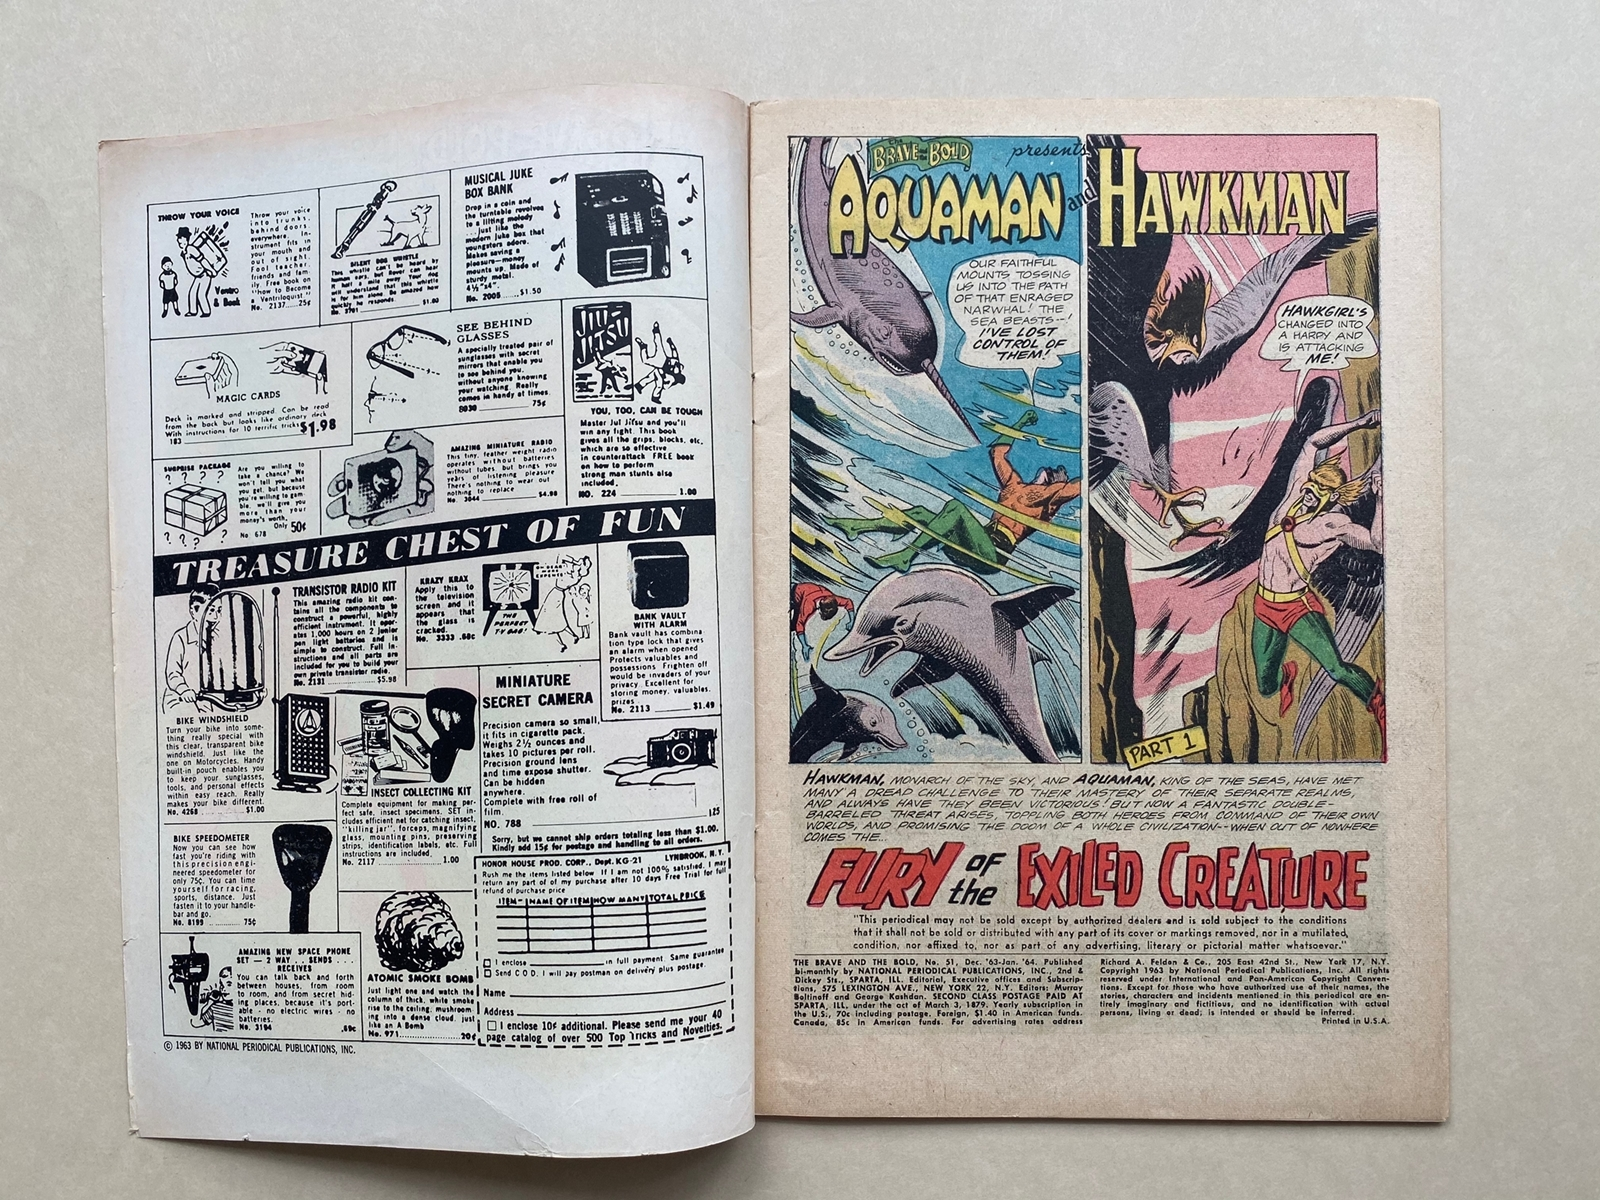 BRAVE & BOLD #51 - AQUAMAN & HAWKMAN - (1964 - DC) FN/VFN (Cents Copy) - Pre-dates Hawkman #1 - - Image 6 of 10